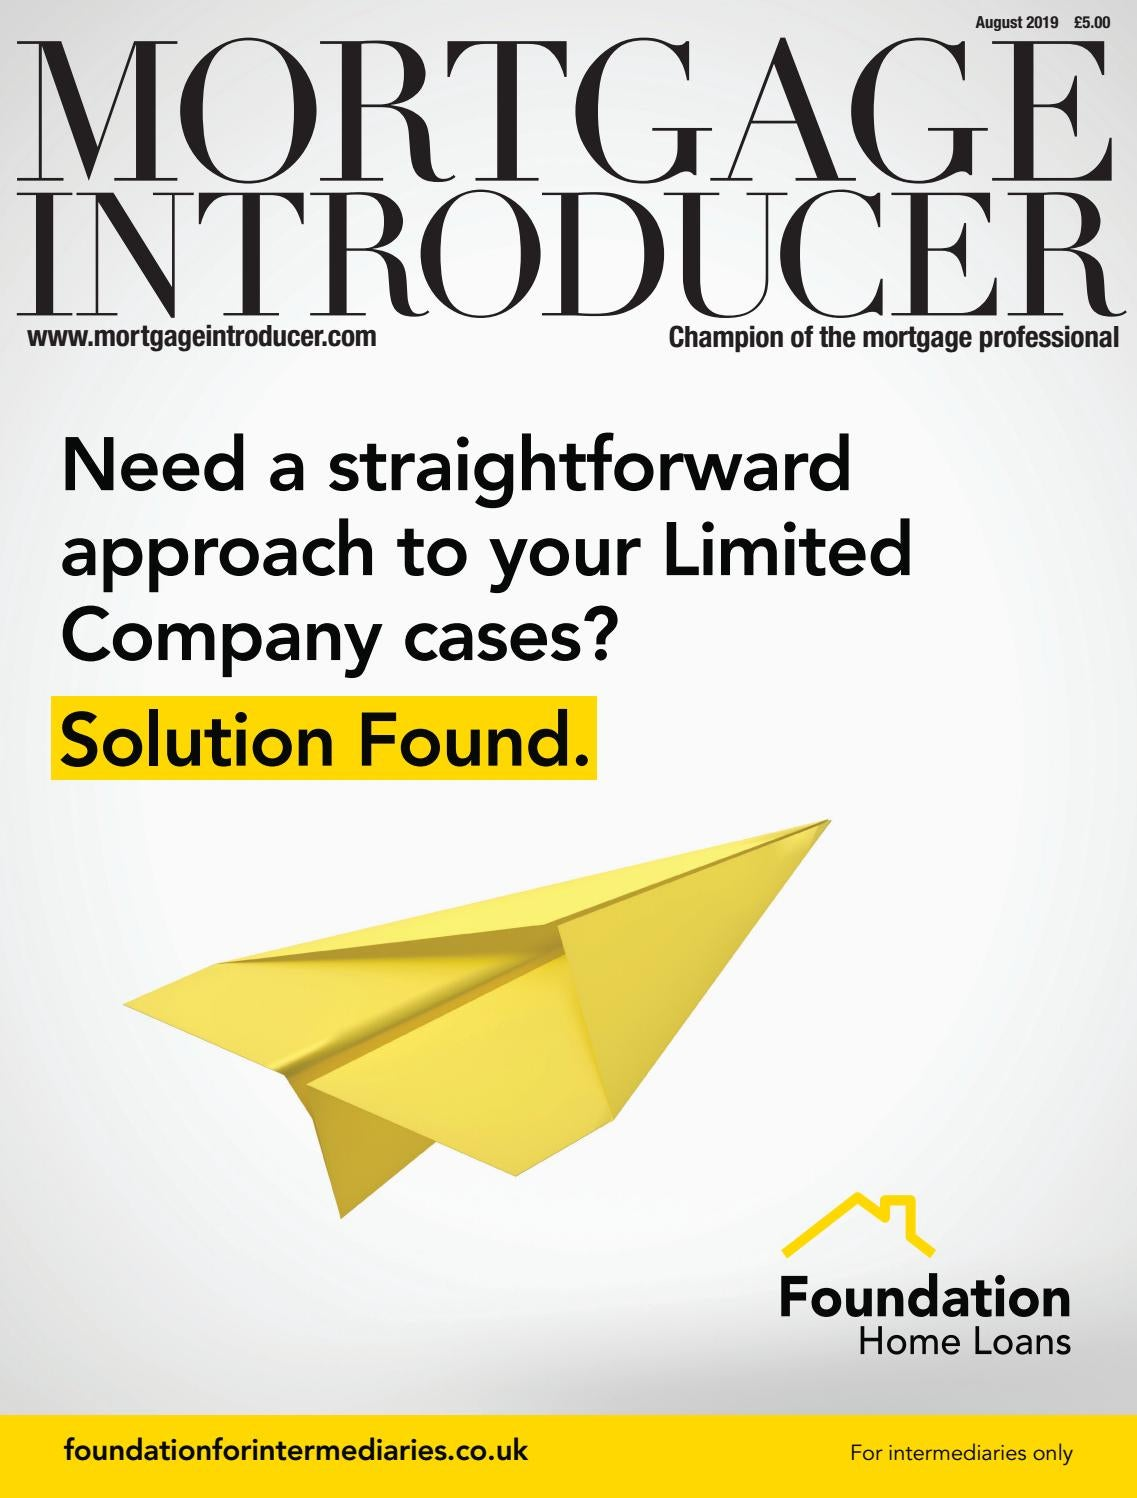 Mortgage Introducer August 2019 by mortgageintroducer - issuu